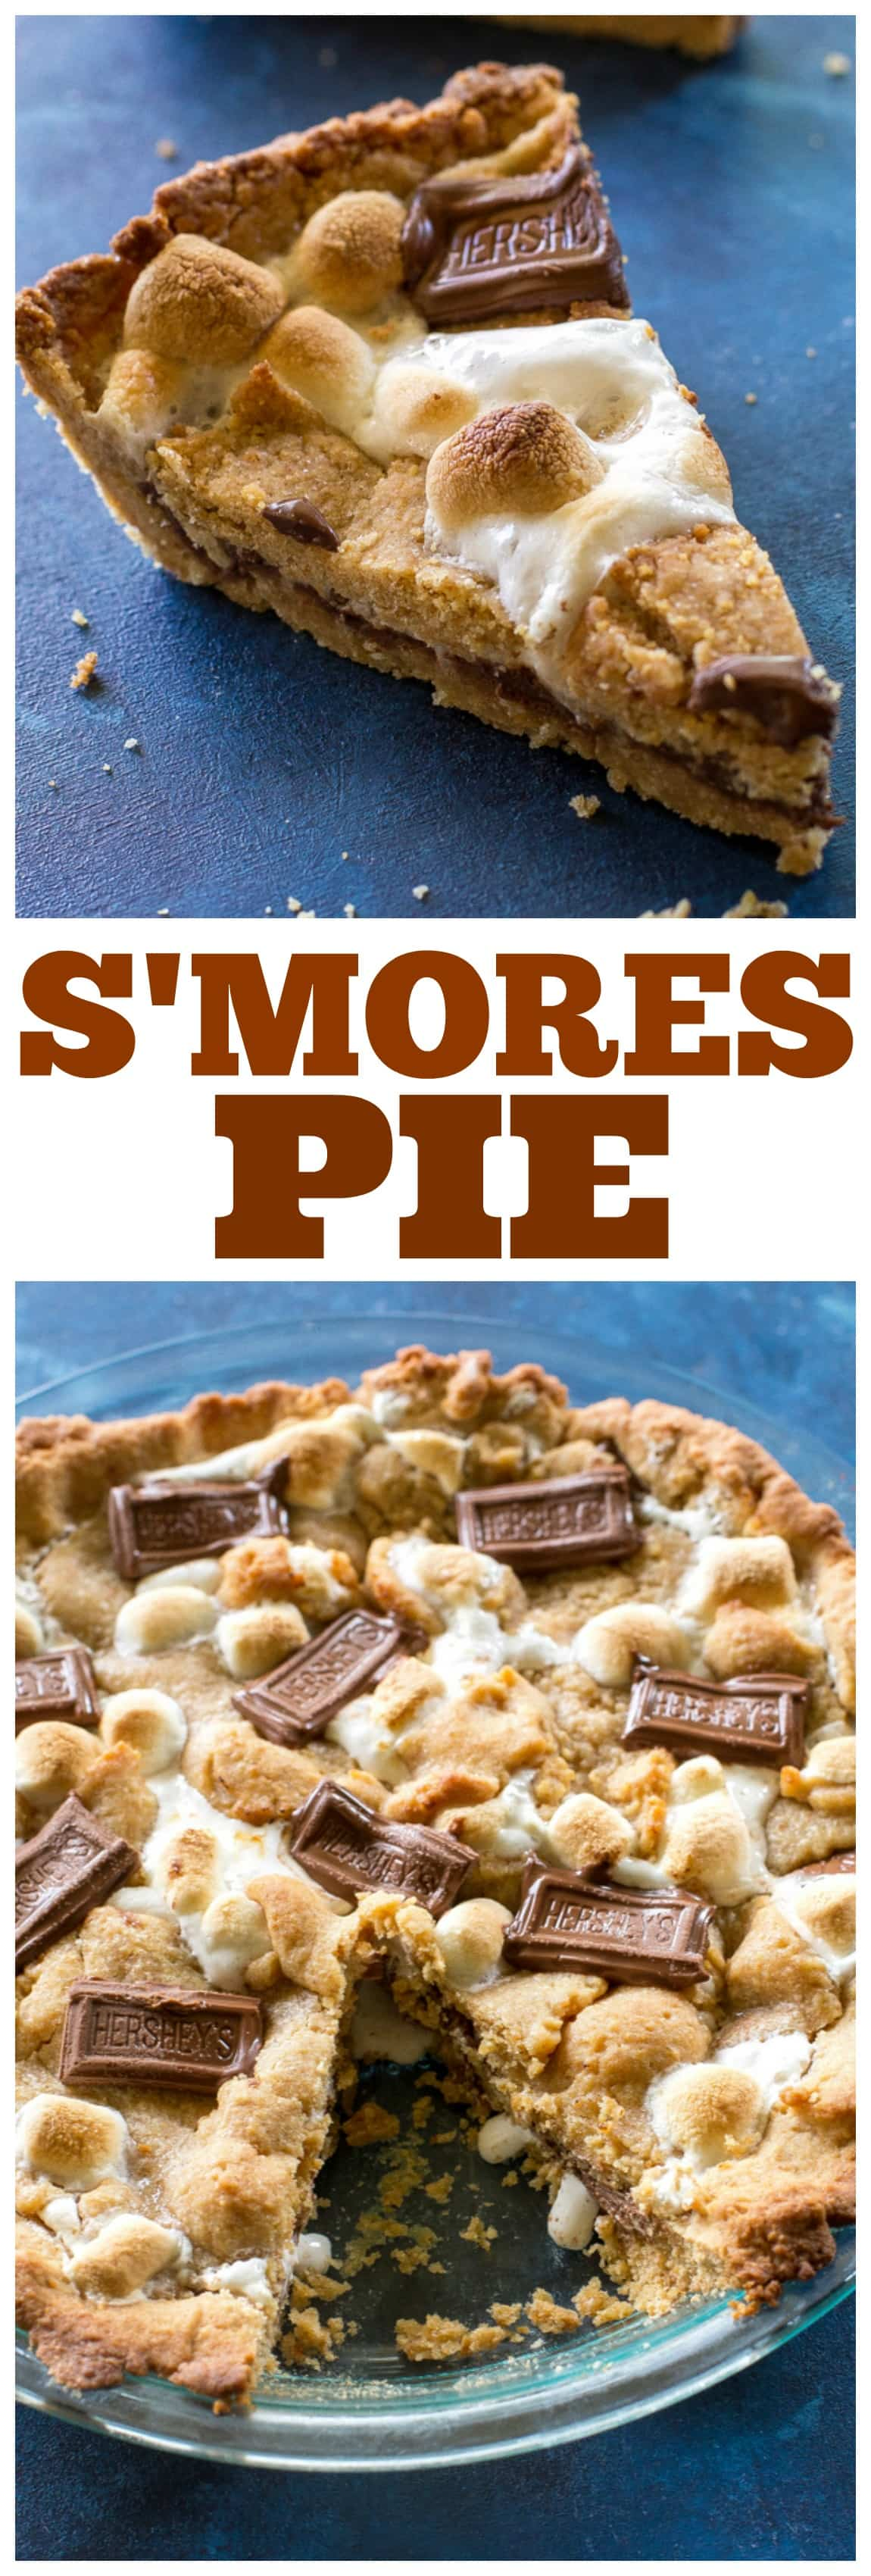 Easy S'mores Pie - layers of graham cracker dough, marshmallows, and chocolate. the-girl-who-ate-everything.com